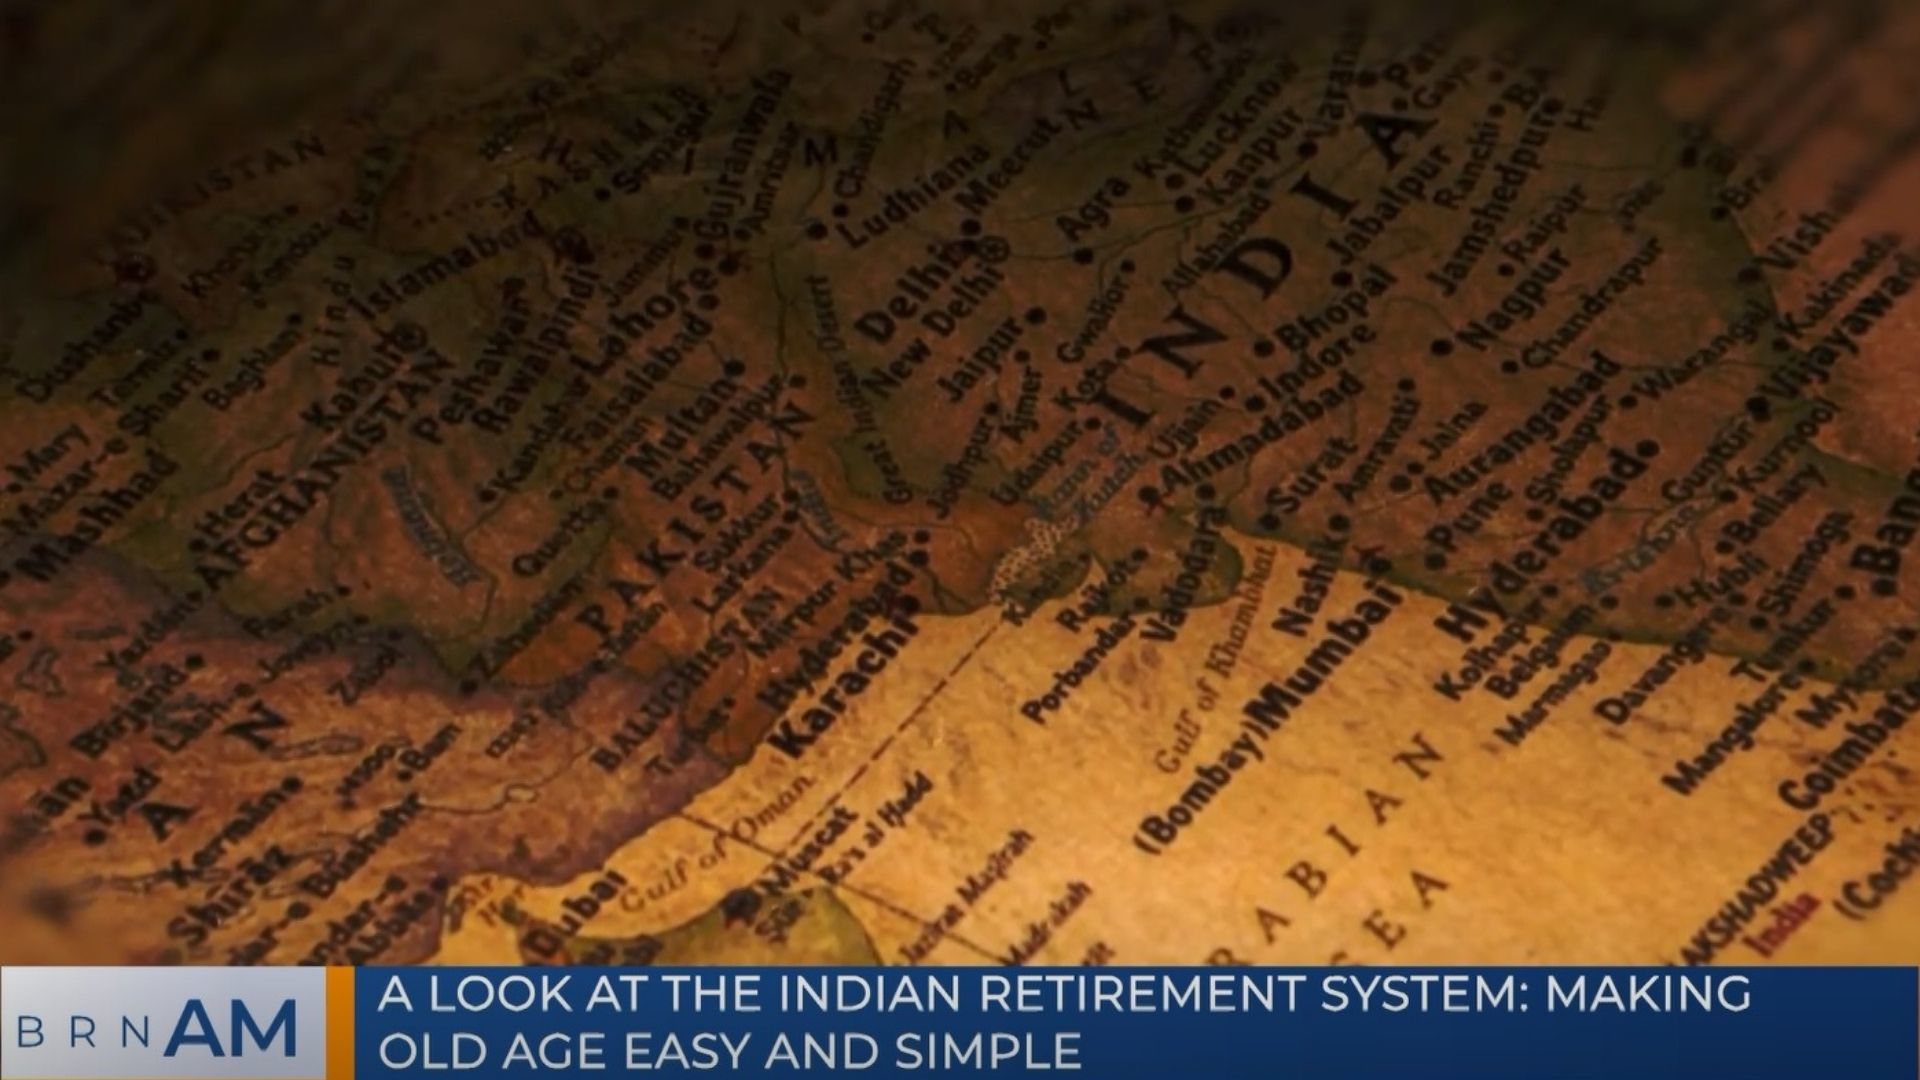 BRN AM   A look at the Indian retirement system: making old age easy and simple